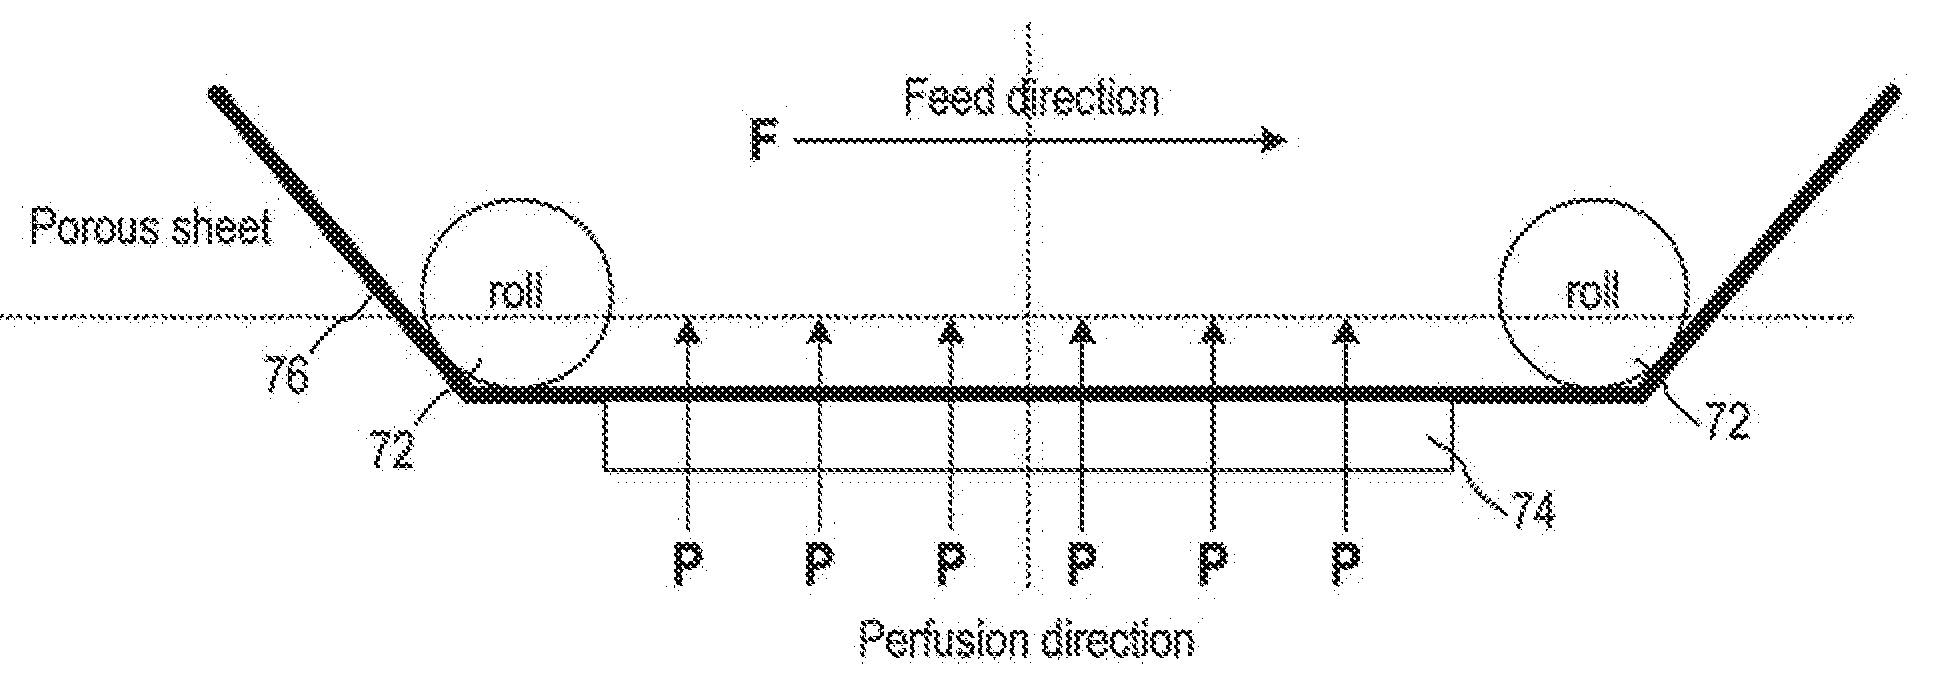 Figure 4 from the patent application. Schematic where a porous sheet of cells is fed through a perfusion bioreactor.